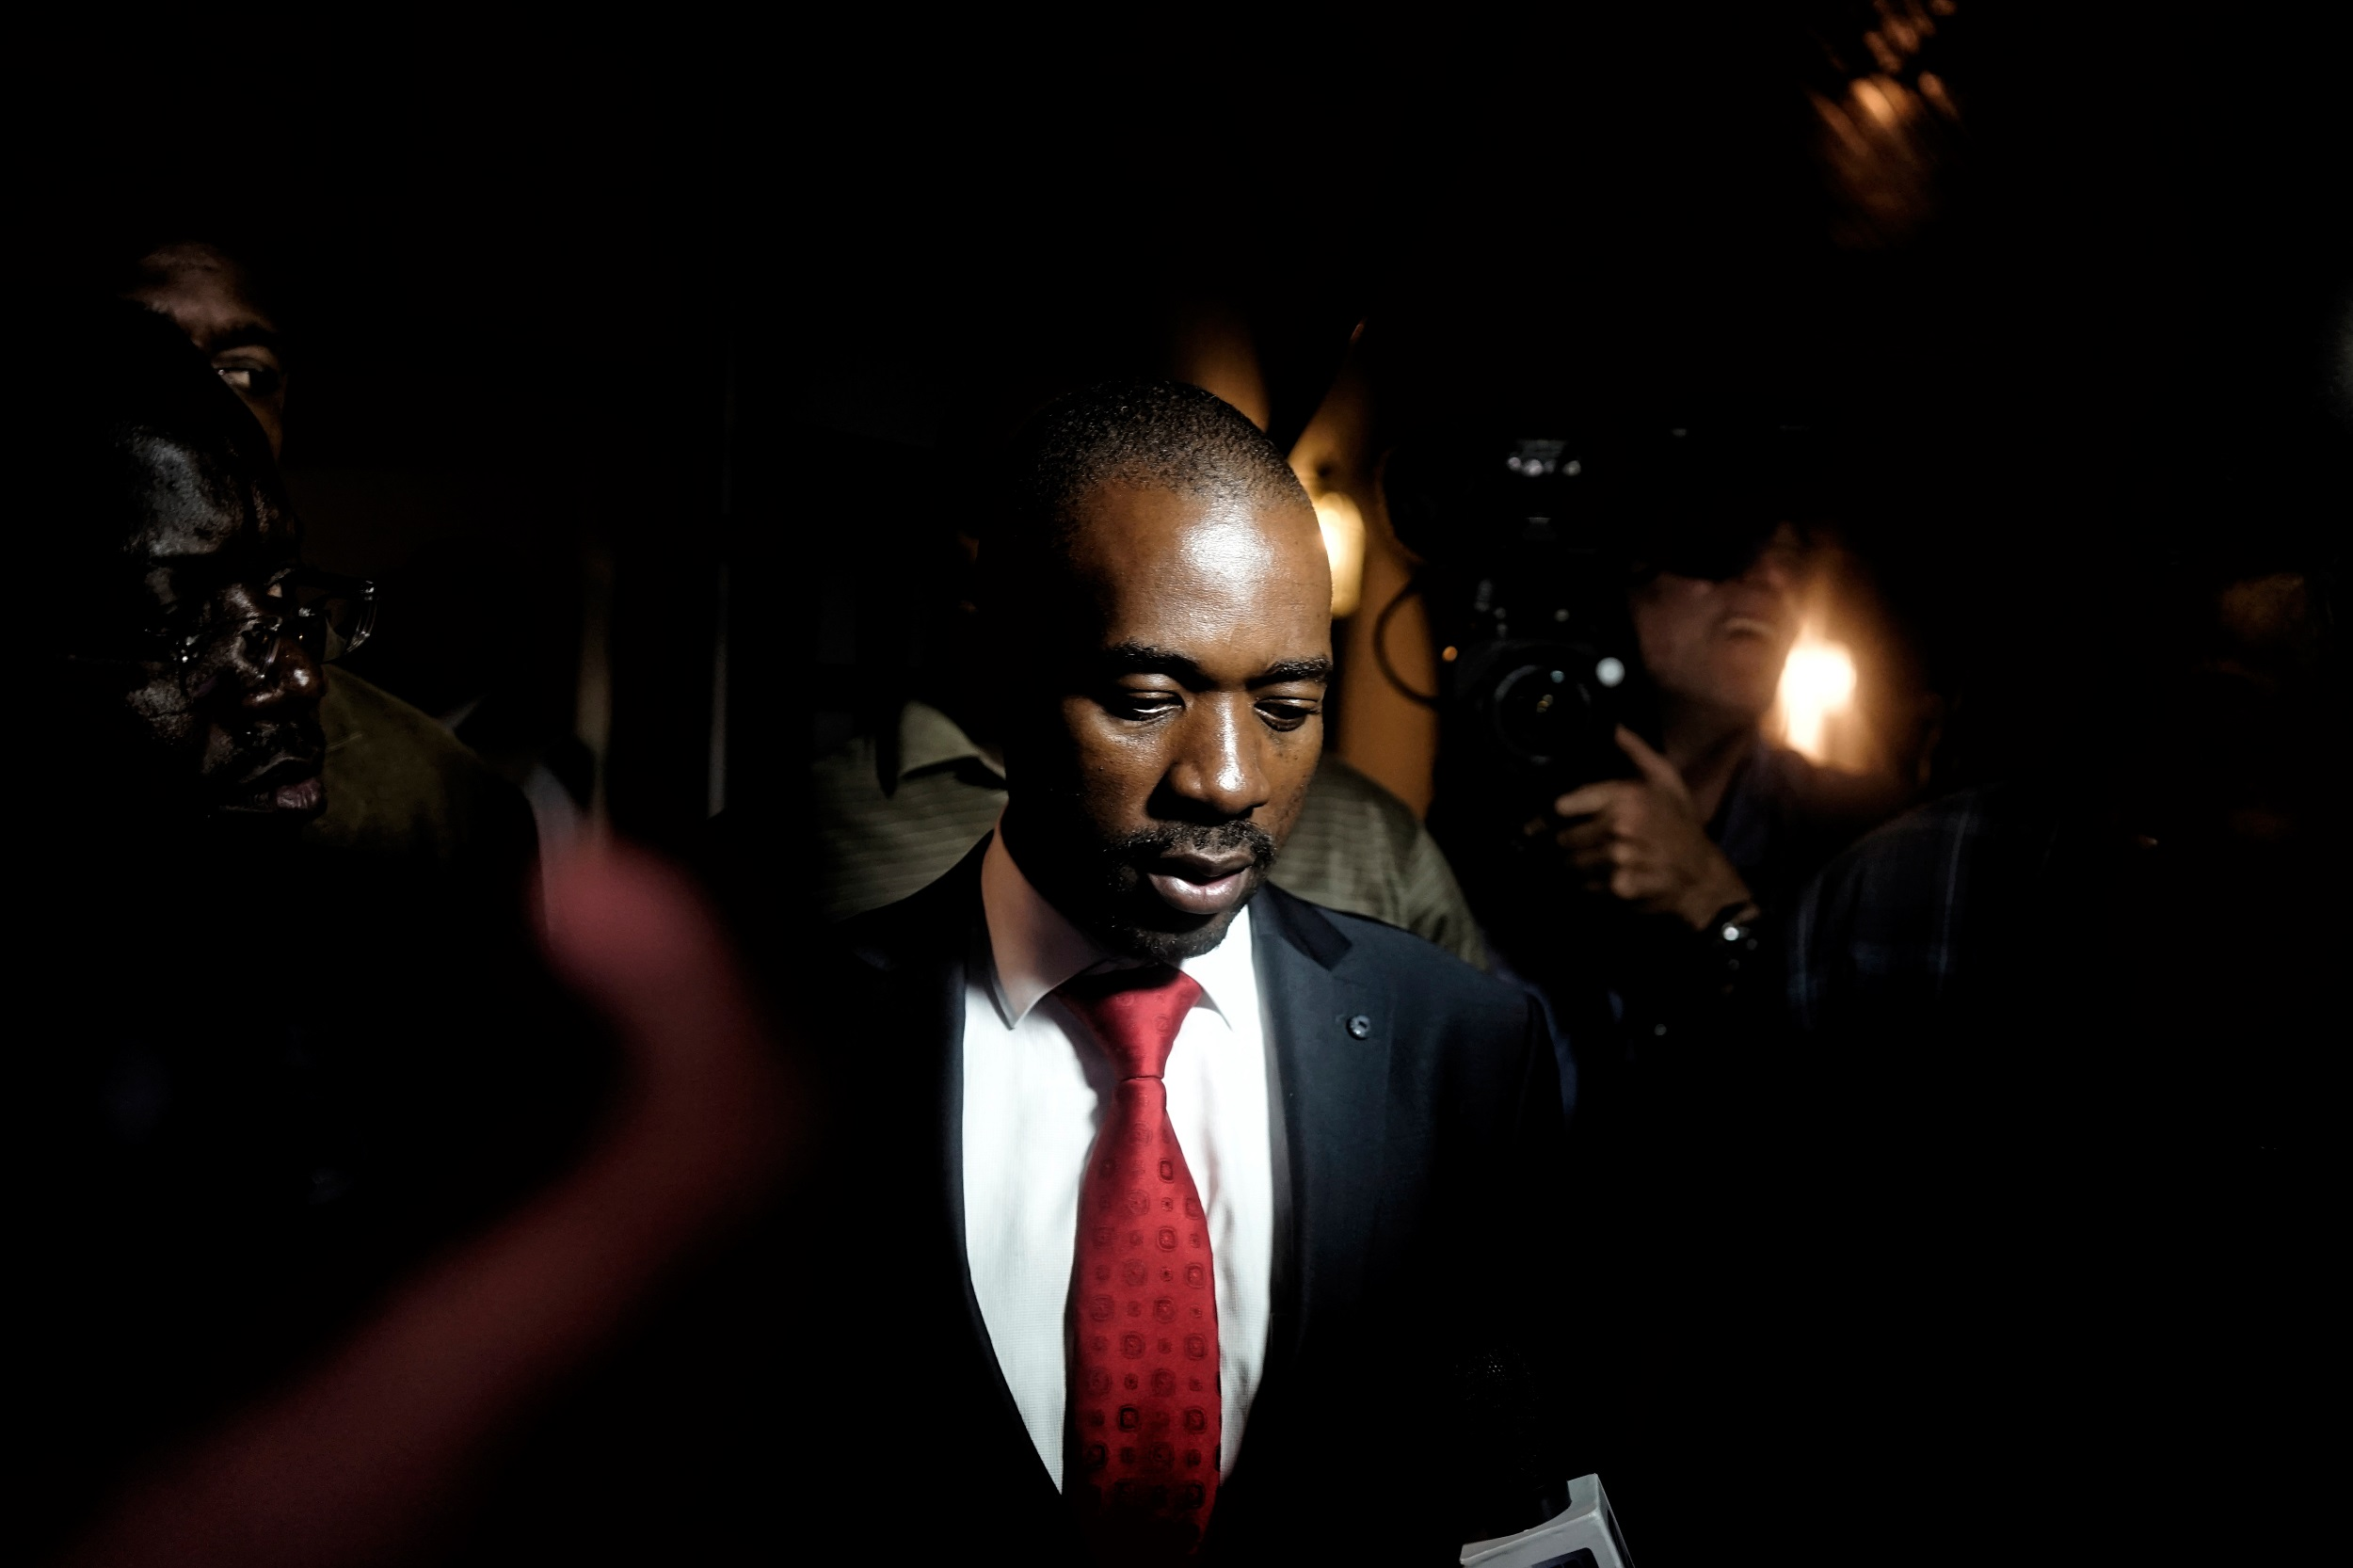 Zimbabwean opposition party Movement for Democratic Change (MDC) Alliance president Nelson Chamisa speaks to the press after a press conference in Harare.